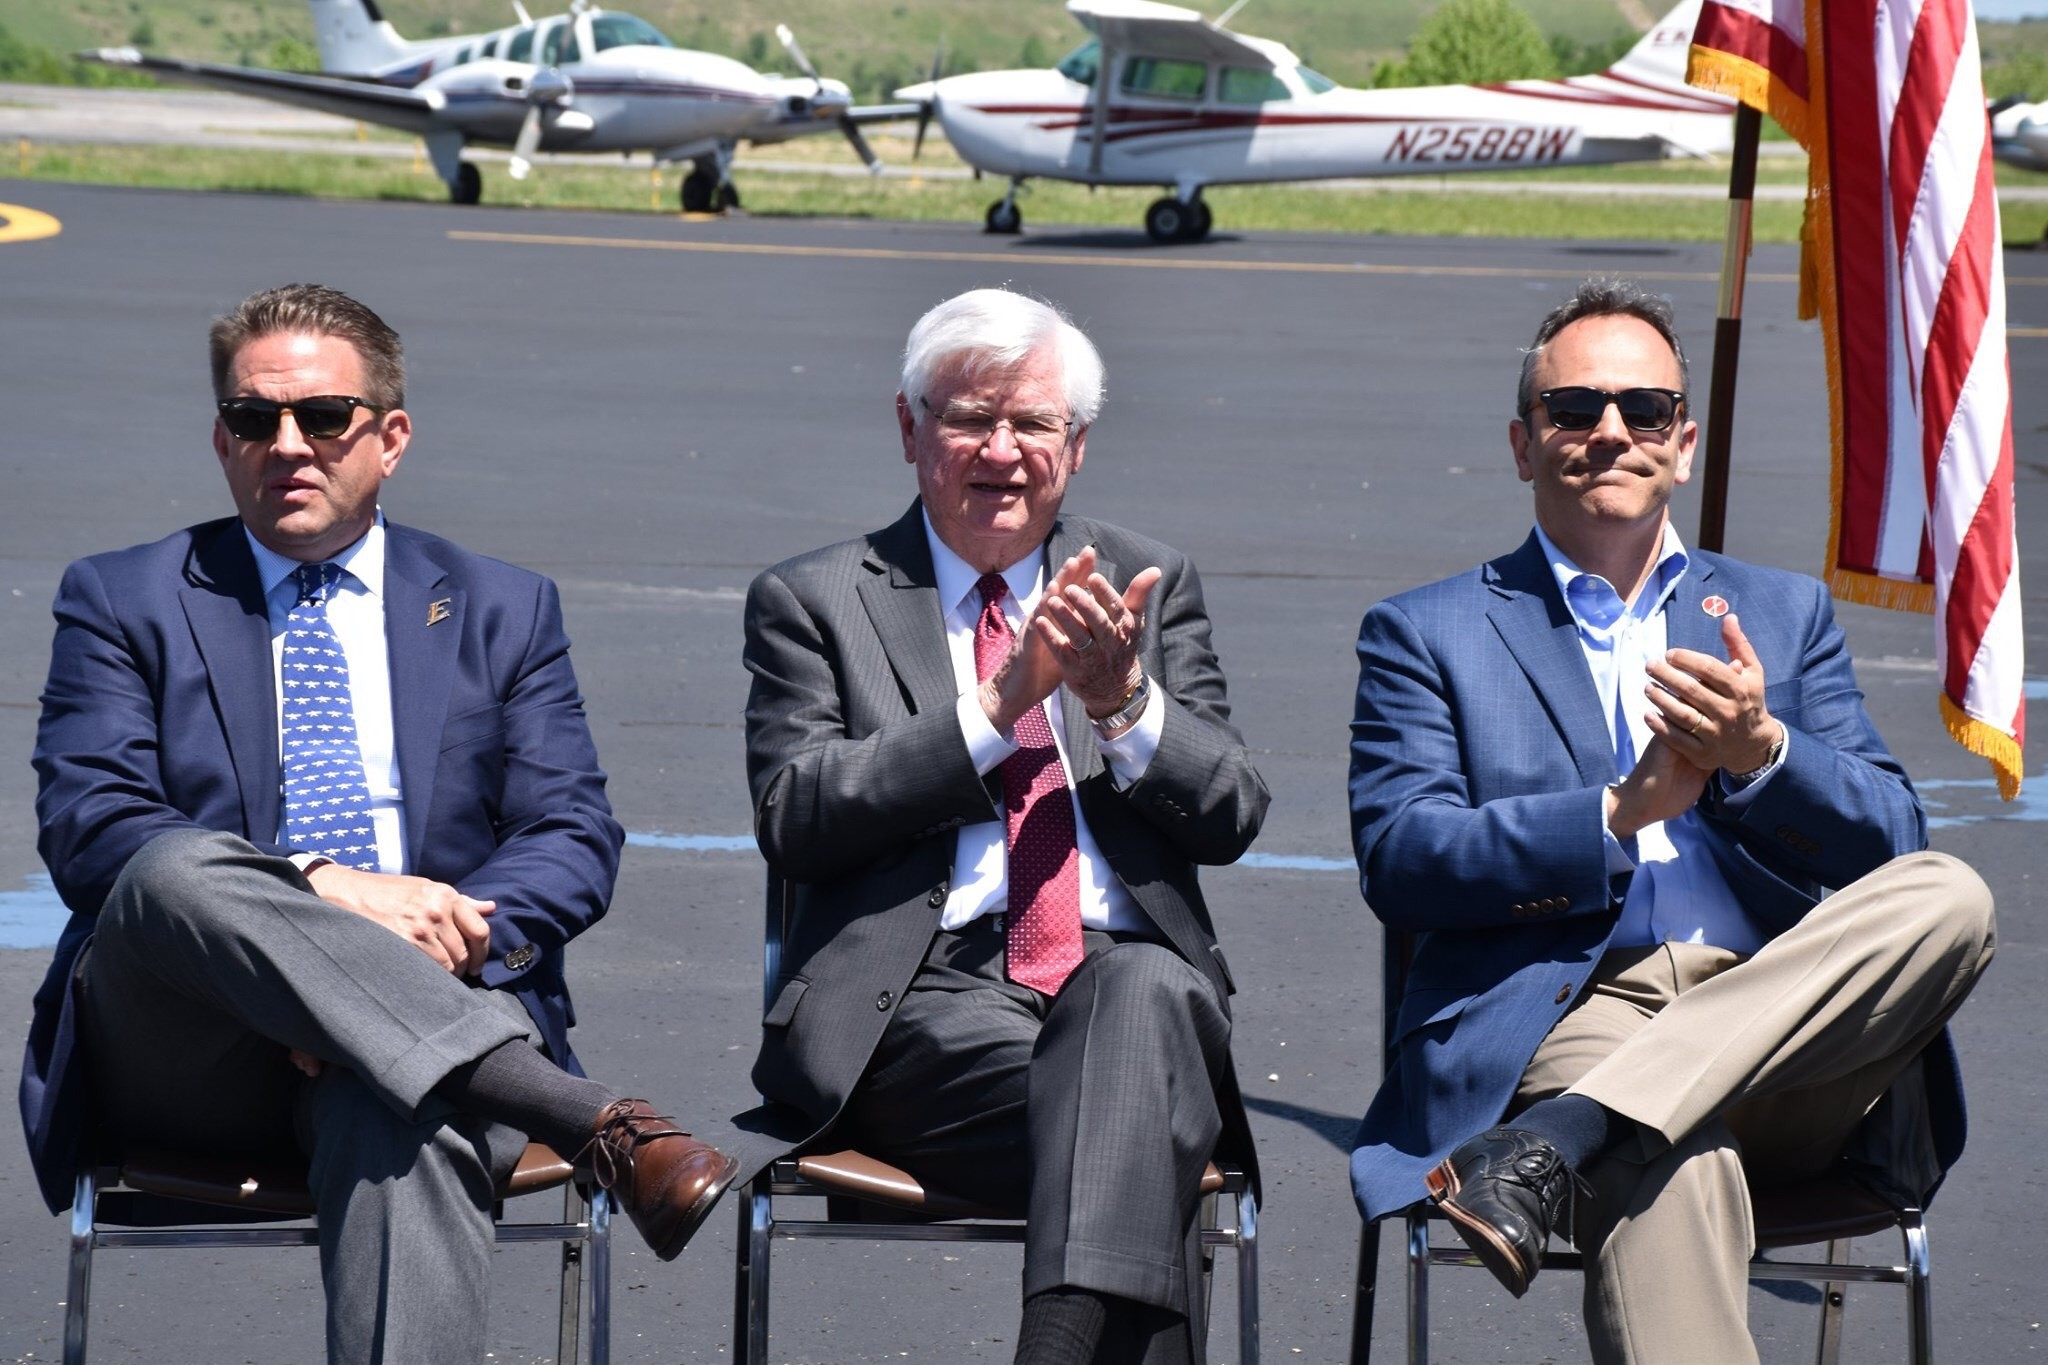 Eastern Kentucky University President Michael Benson, left, is shown with SOAR Principal Officers Congressman Hal Rogers, center, and Governor Matt Bevin during a press conference at the Wendell H. Ford Regional Airport in Chavies, Ky. on Monday, May 6.